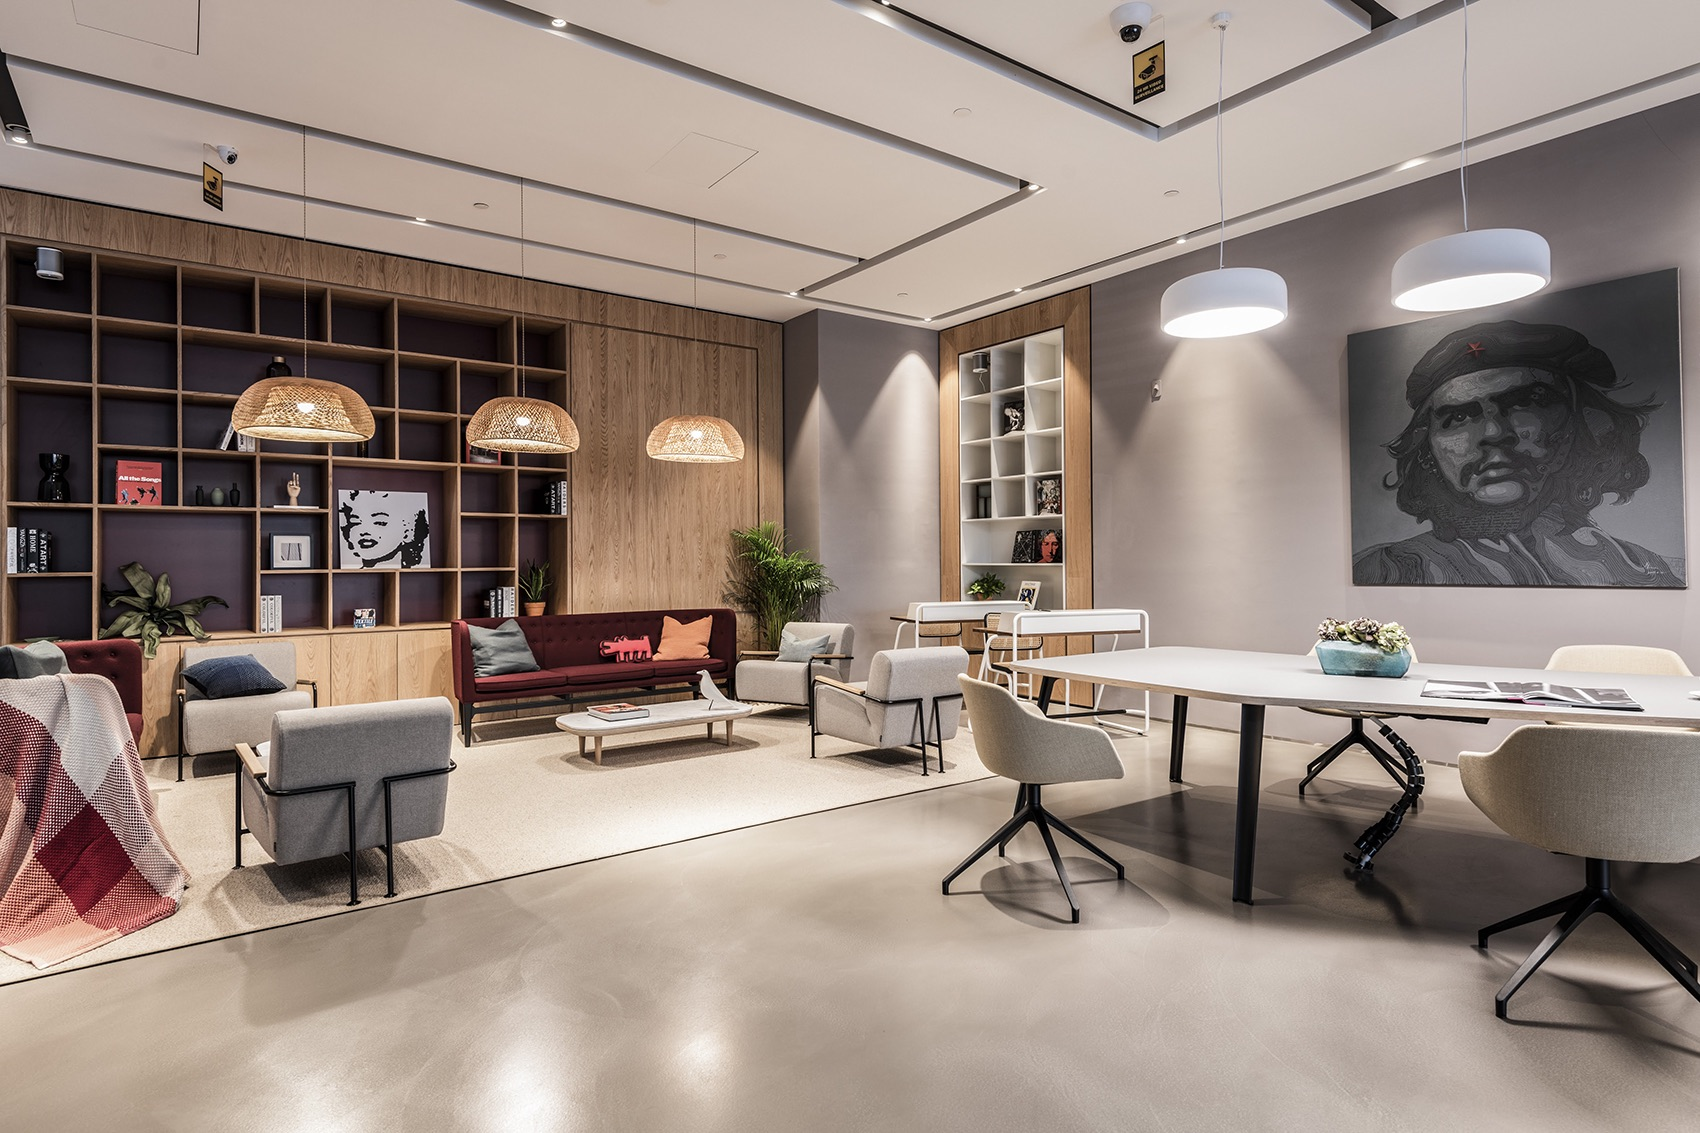 A Tour of Spaces' Elegant Taipei Coworking Space